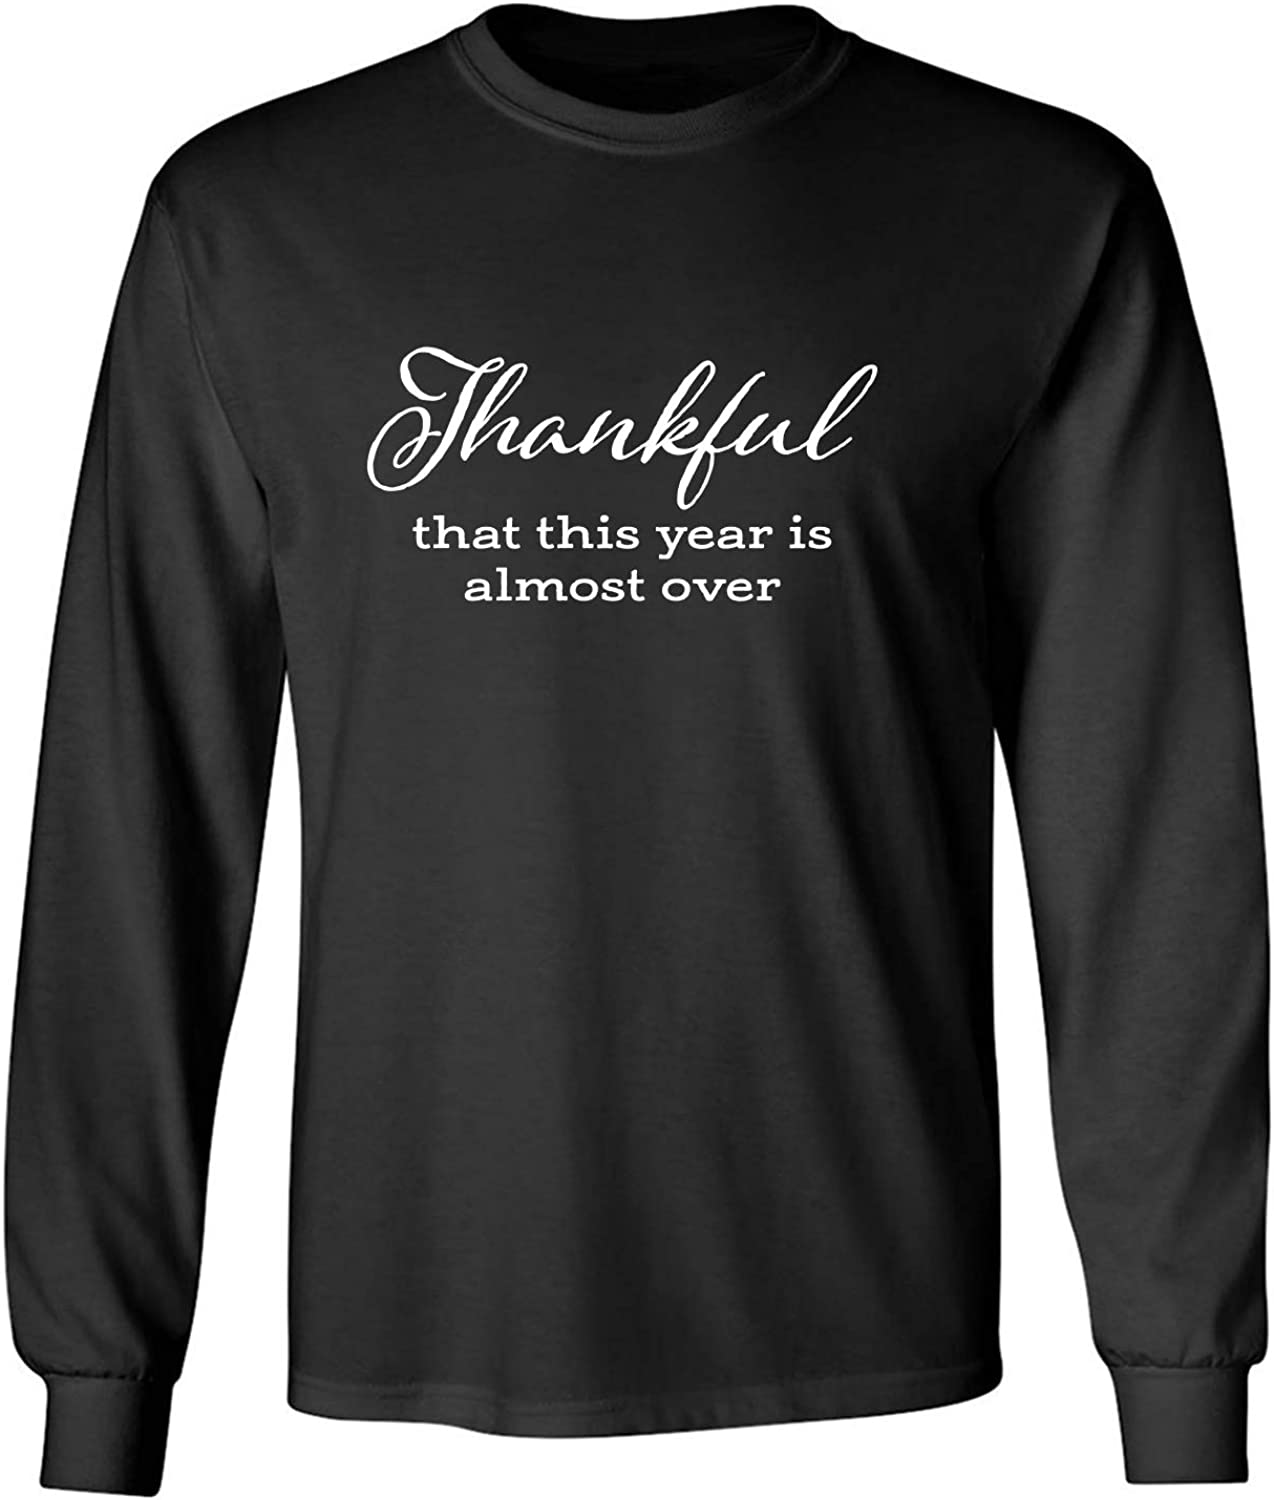 Thankful This Year is Almost Over Adult Long Sleeve T-Shirt in Black - XXXX-Large